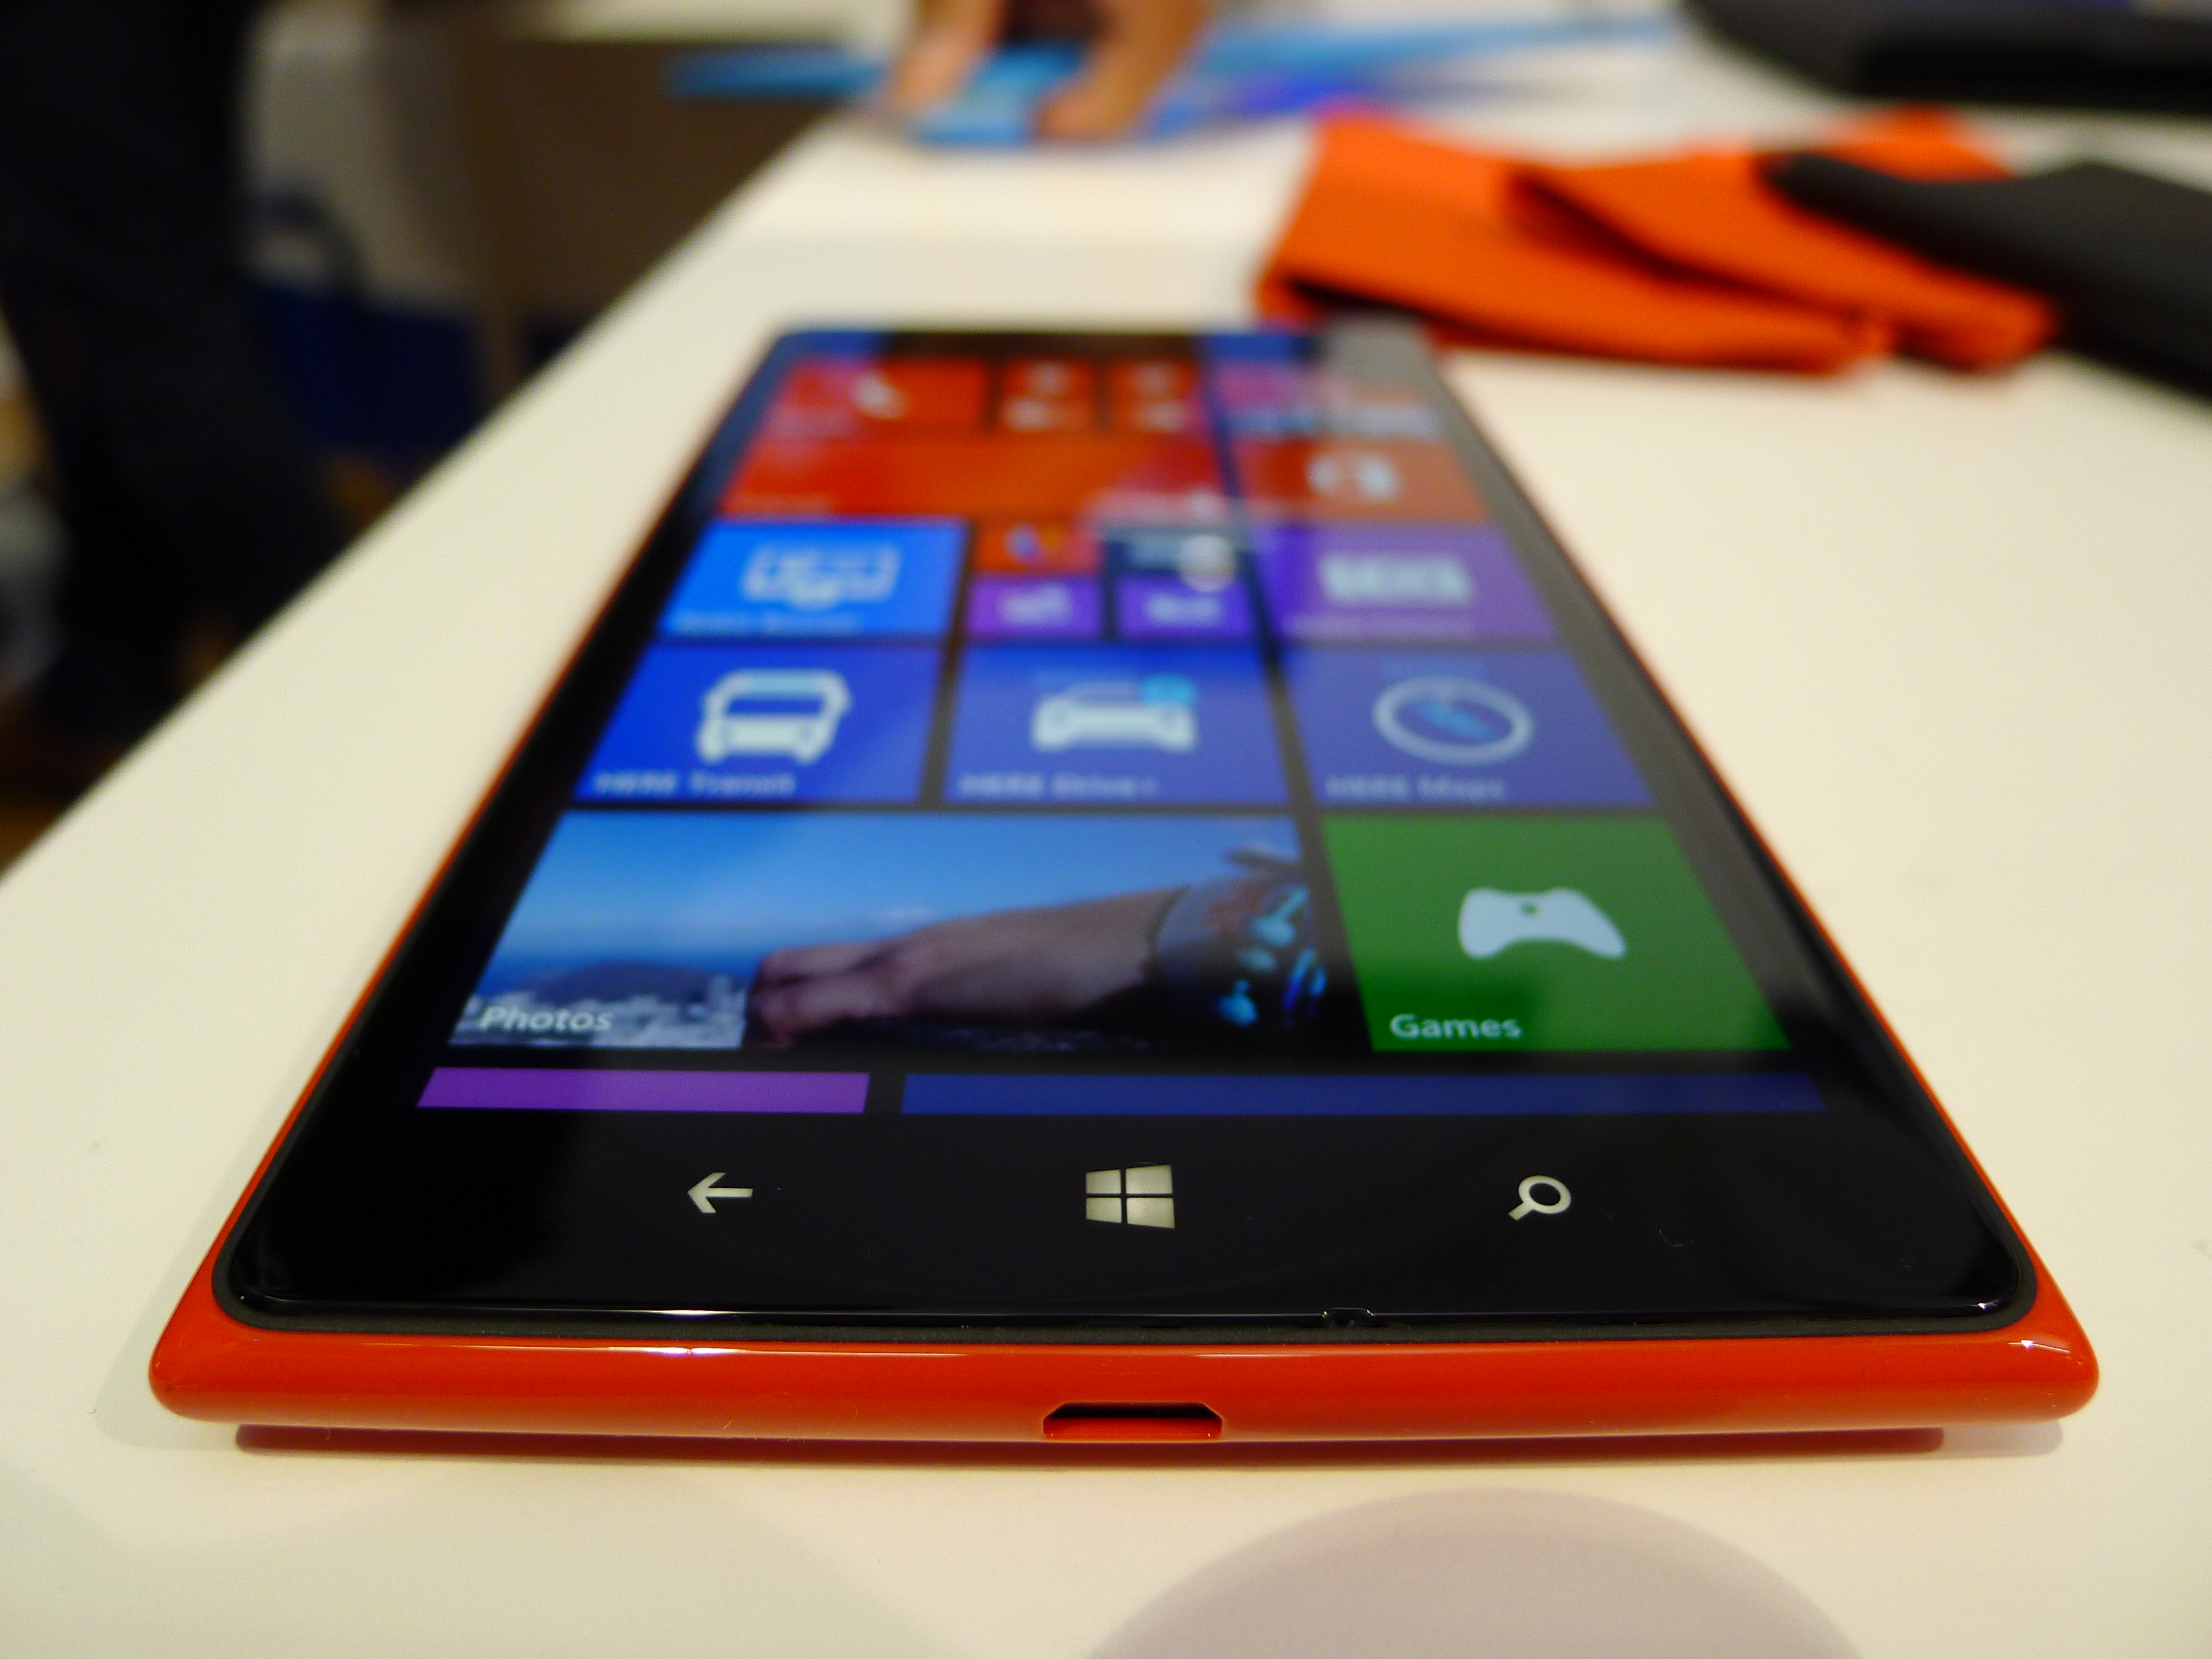 P1040514 Nokia Lumia 1520 hands on: This colossal 6, 1080p quad core smartphone is sizing up the Galaxy Note 3